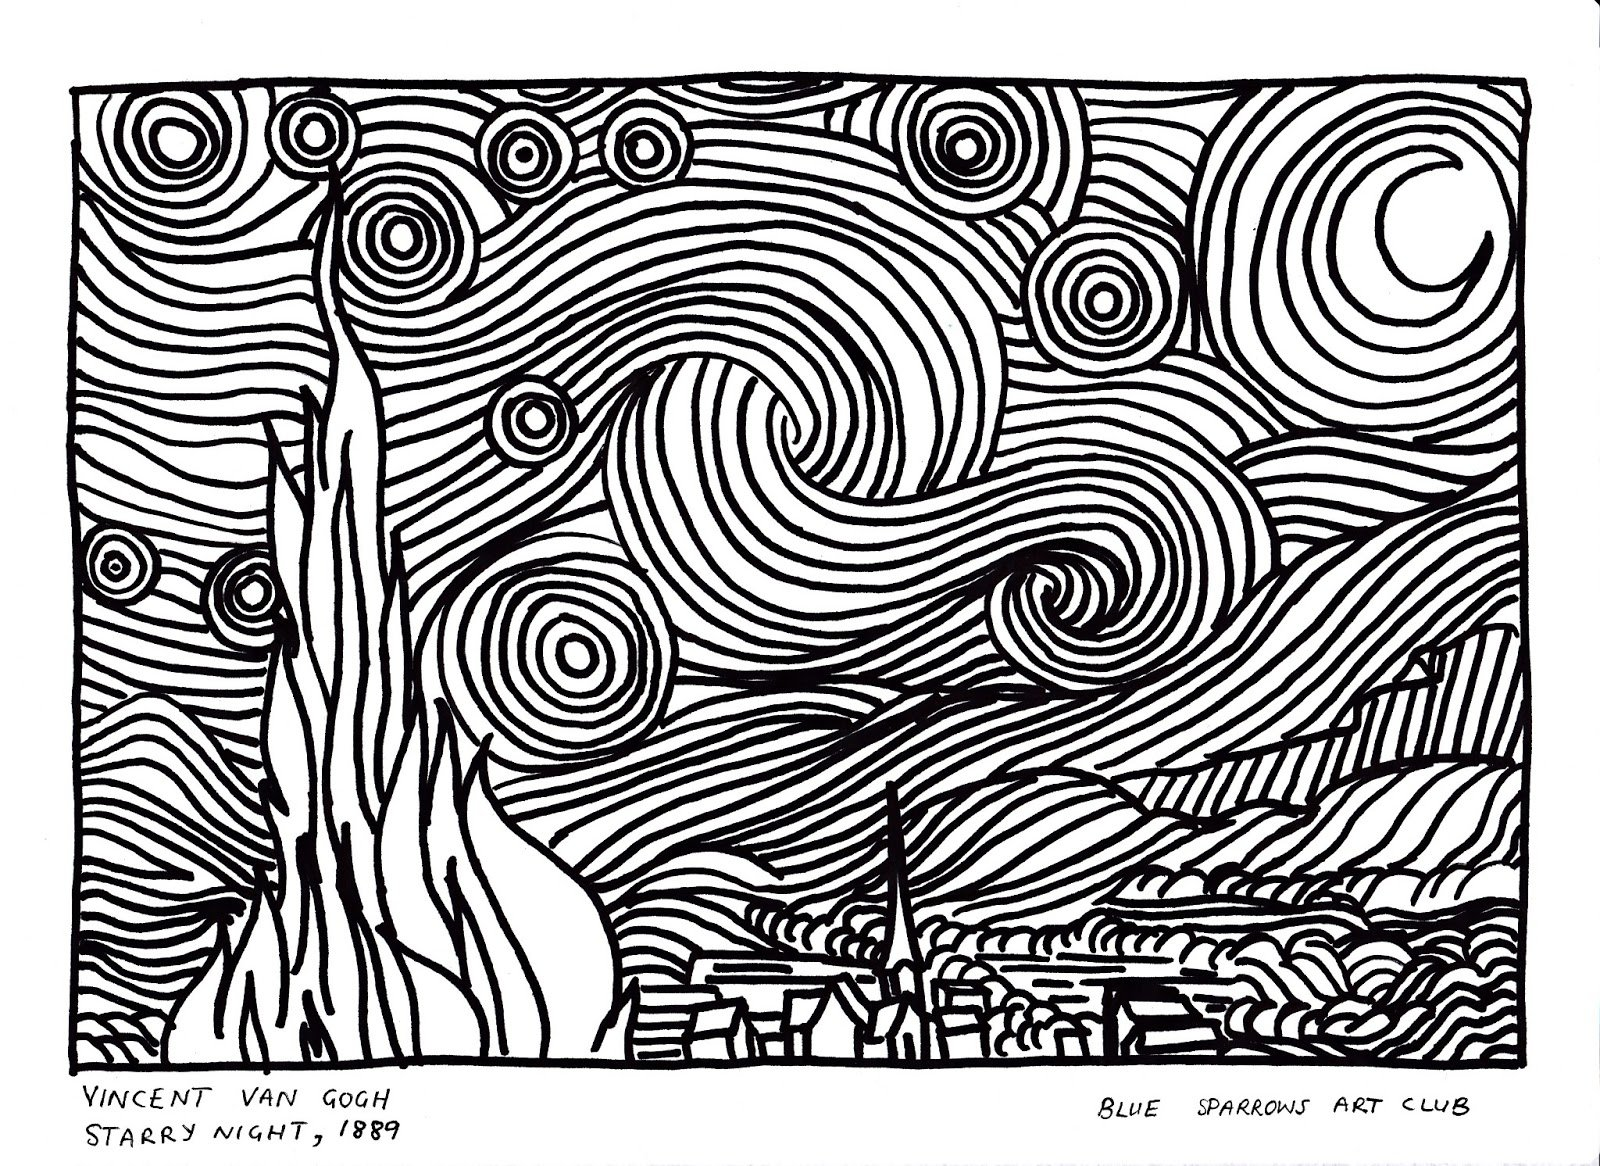 Van Gogh Starry Night Coloring Page, Vincent Van Gogh Starry Night